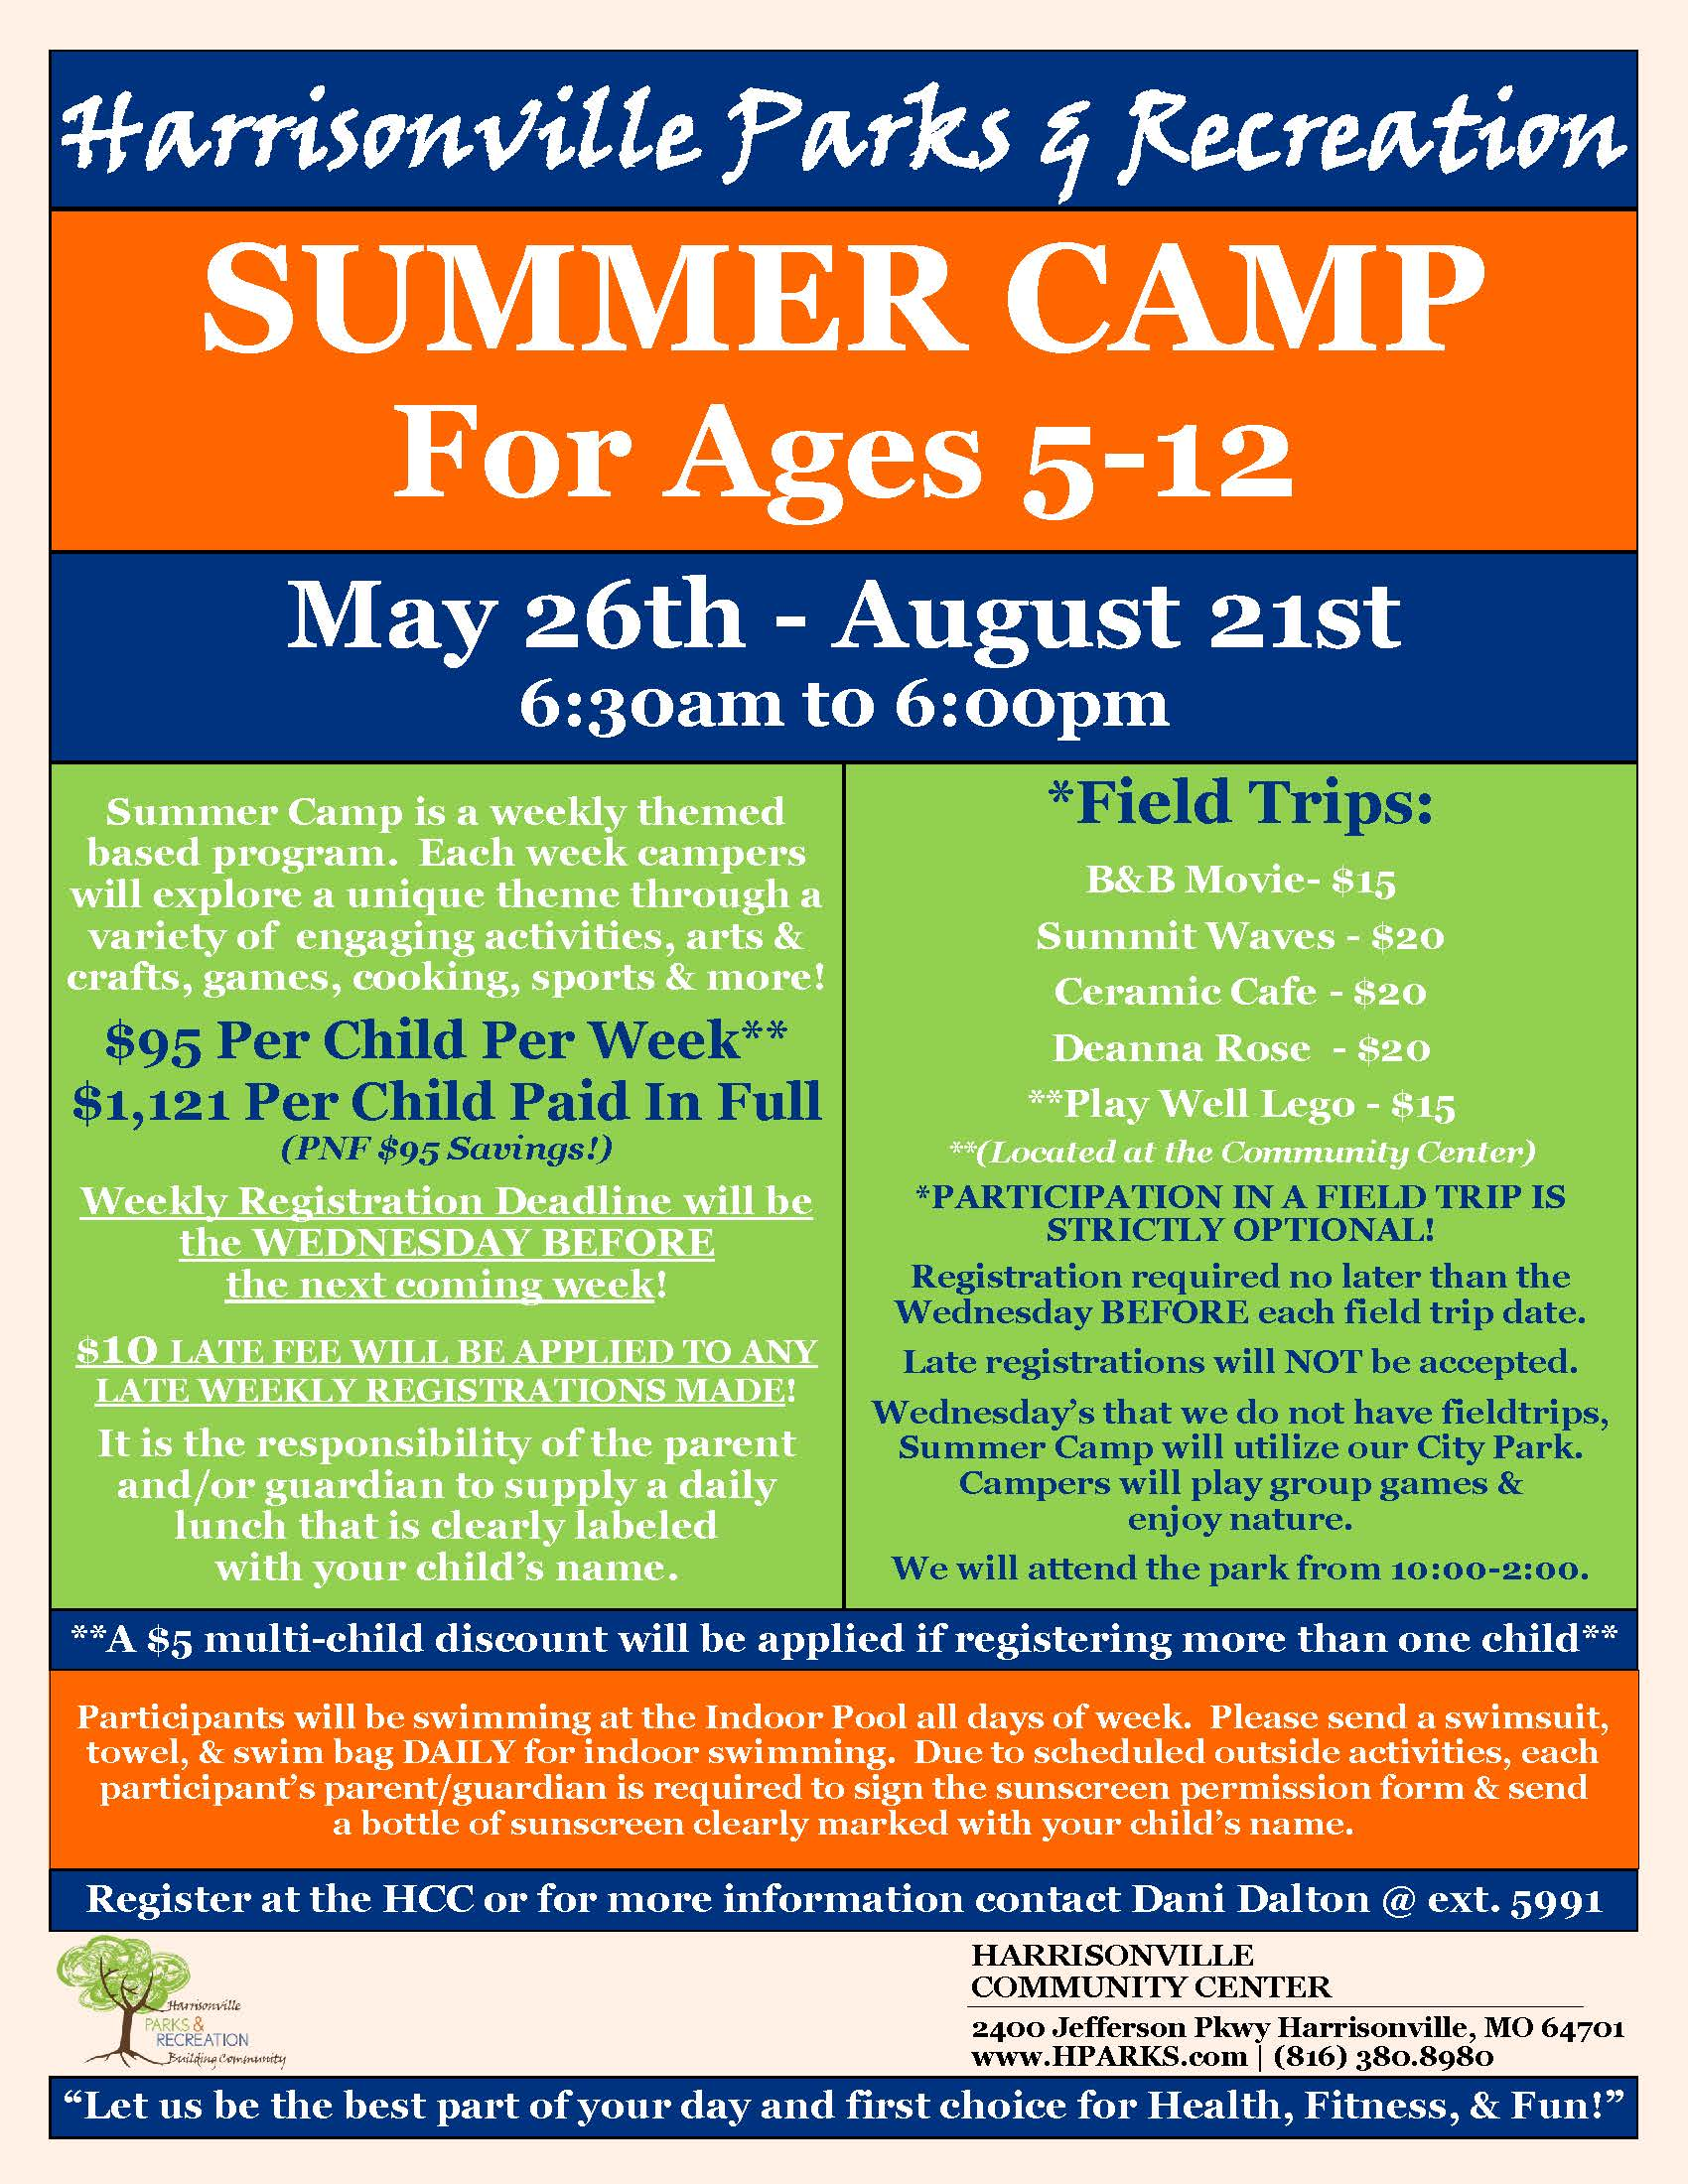 Summer Camp Flyer 2020, May 25th-Aug 21st 2020, 2.1_Page_1